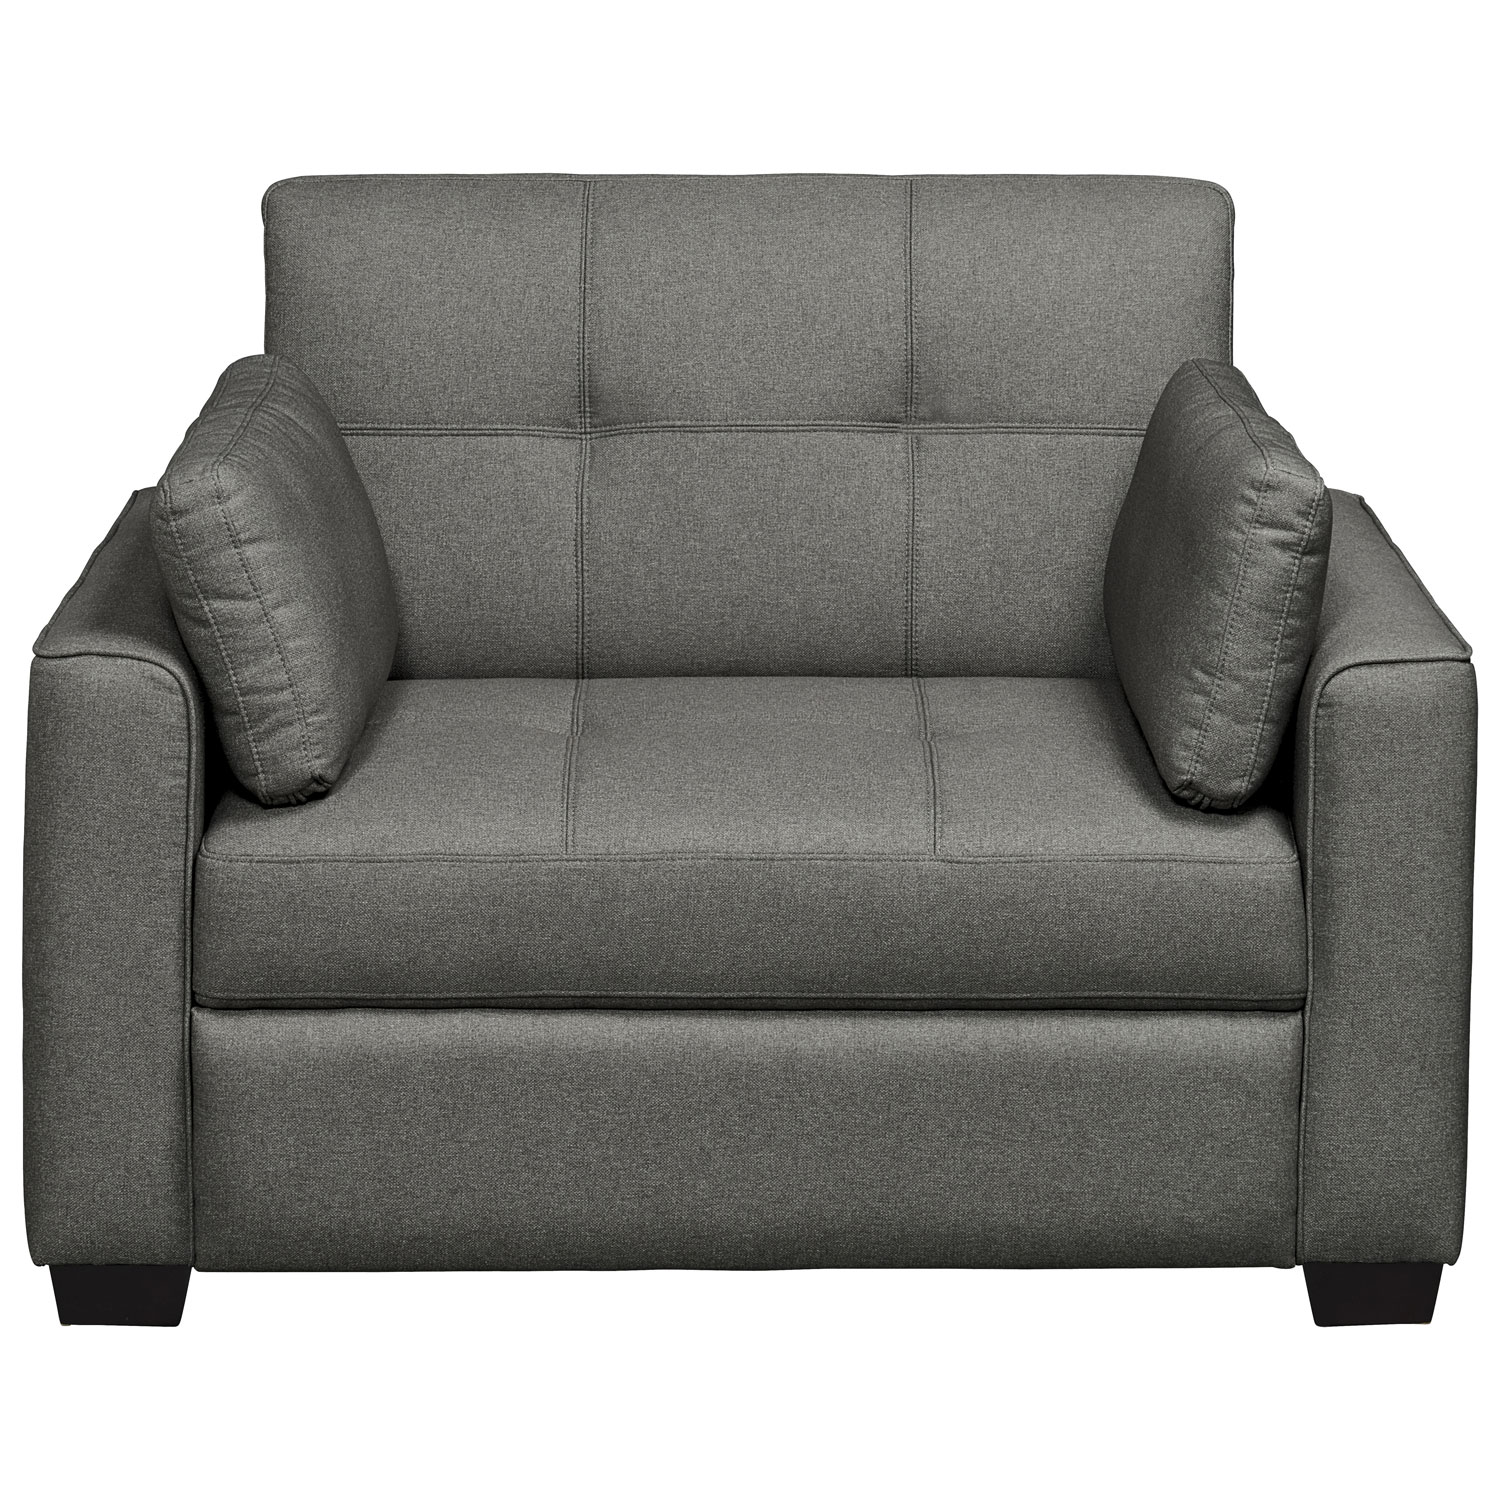 Futons & Sofa Beds Huge Futon & Sofa Bed Selection Best Buy Canada